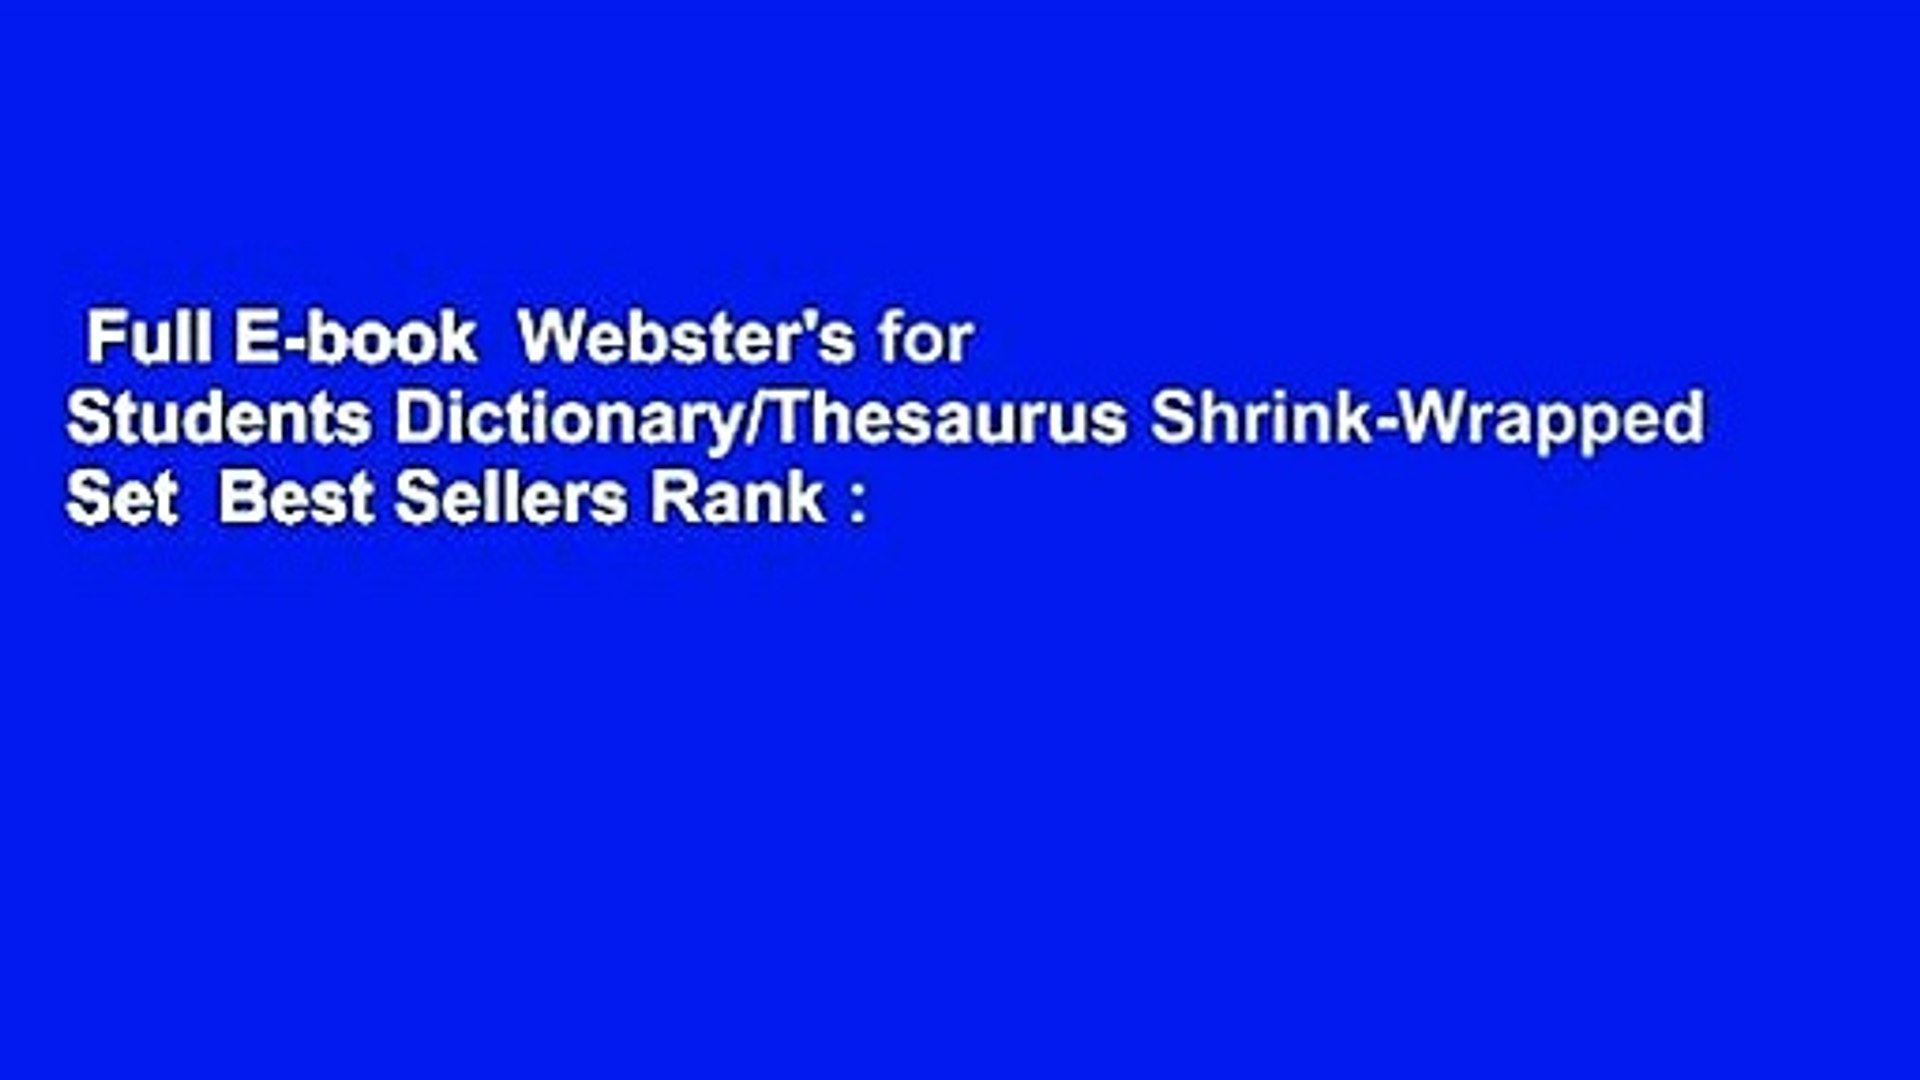 Full E-book Webster's for Students Dictionary/Thesaurus Shrink-Wrapped Set  Best Sellers Rank :